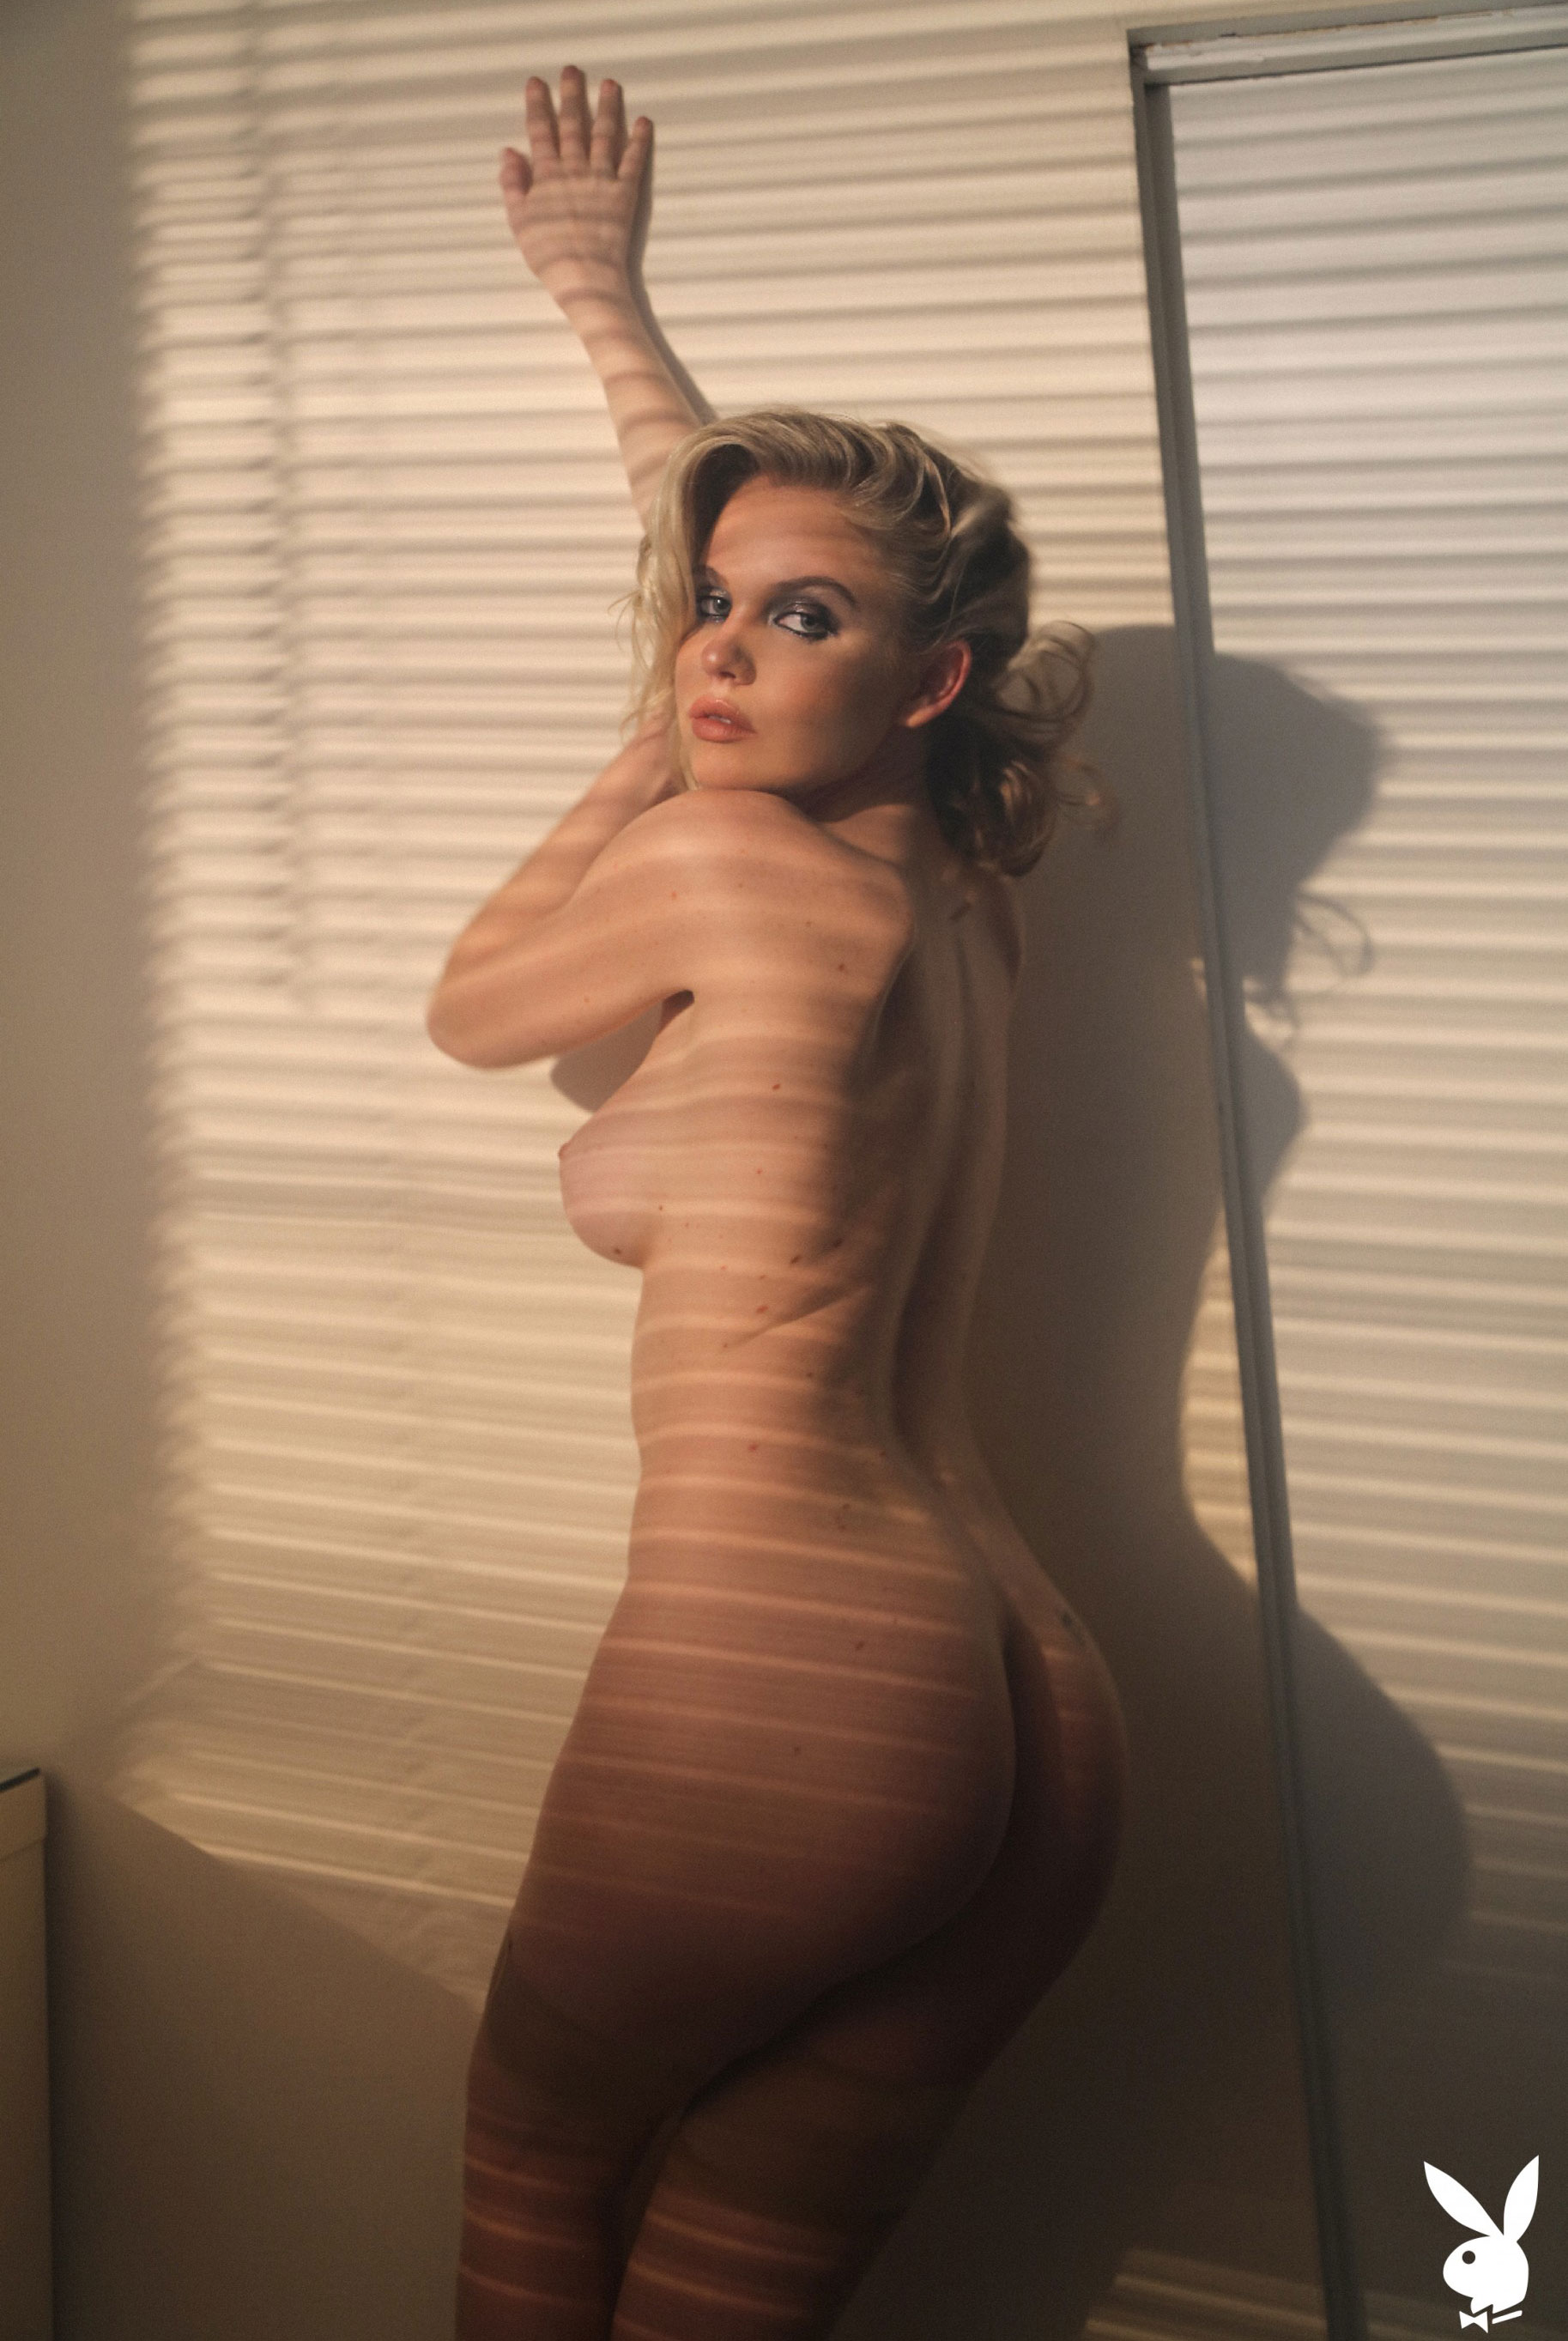 Kayslee Collins nude by Alexa King - Playboy USA july/august 2018